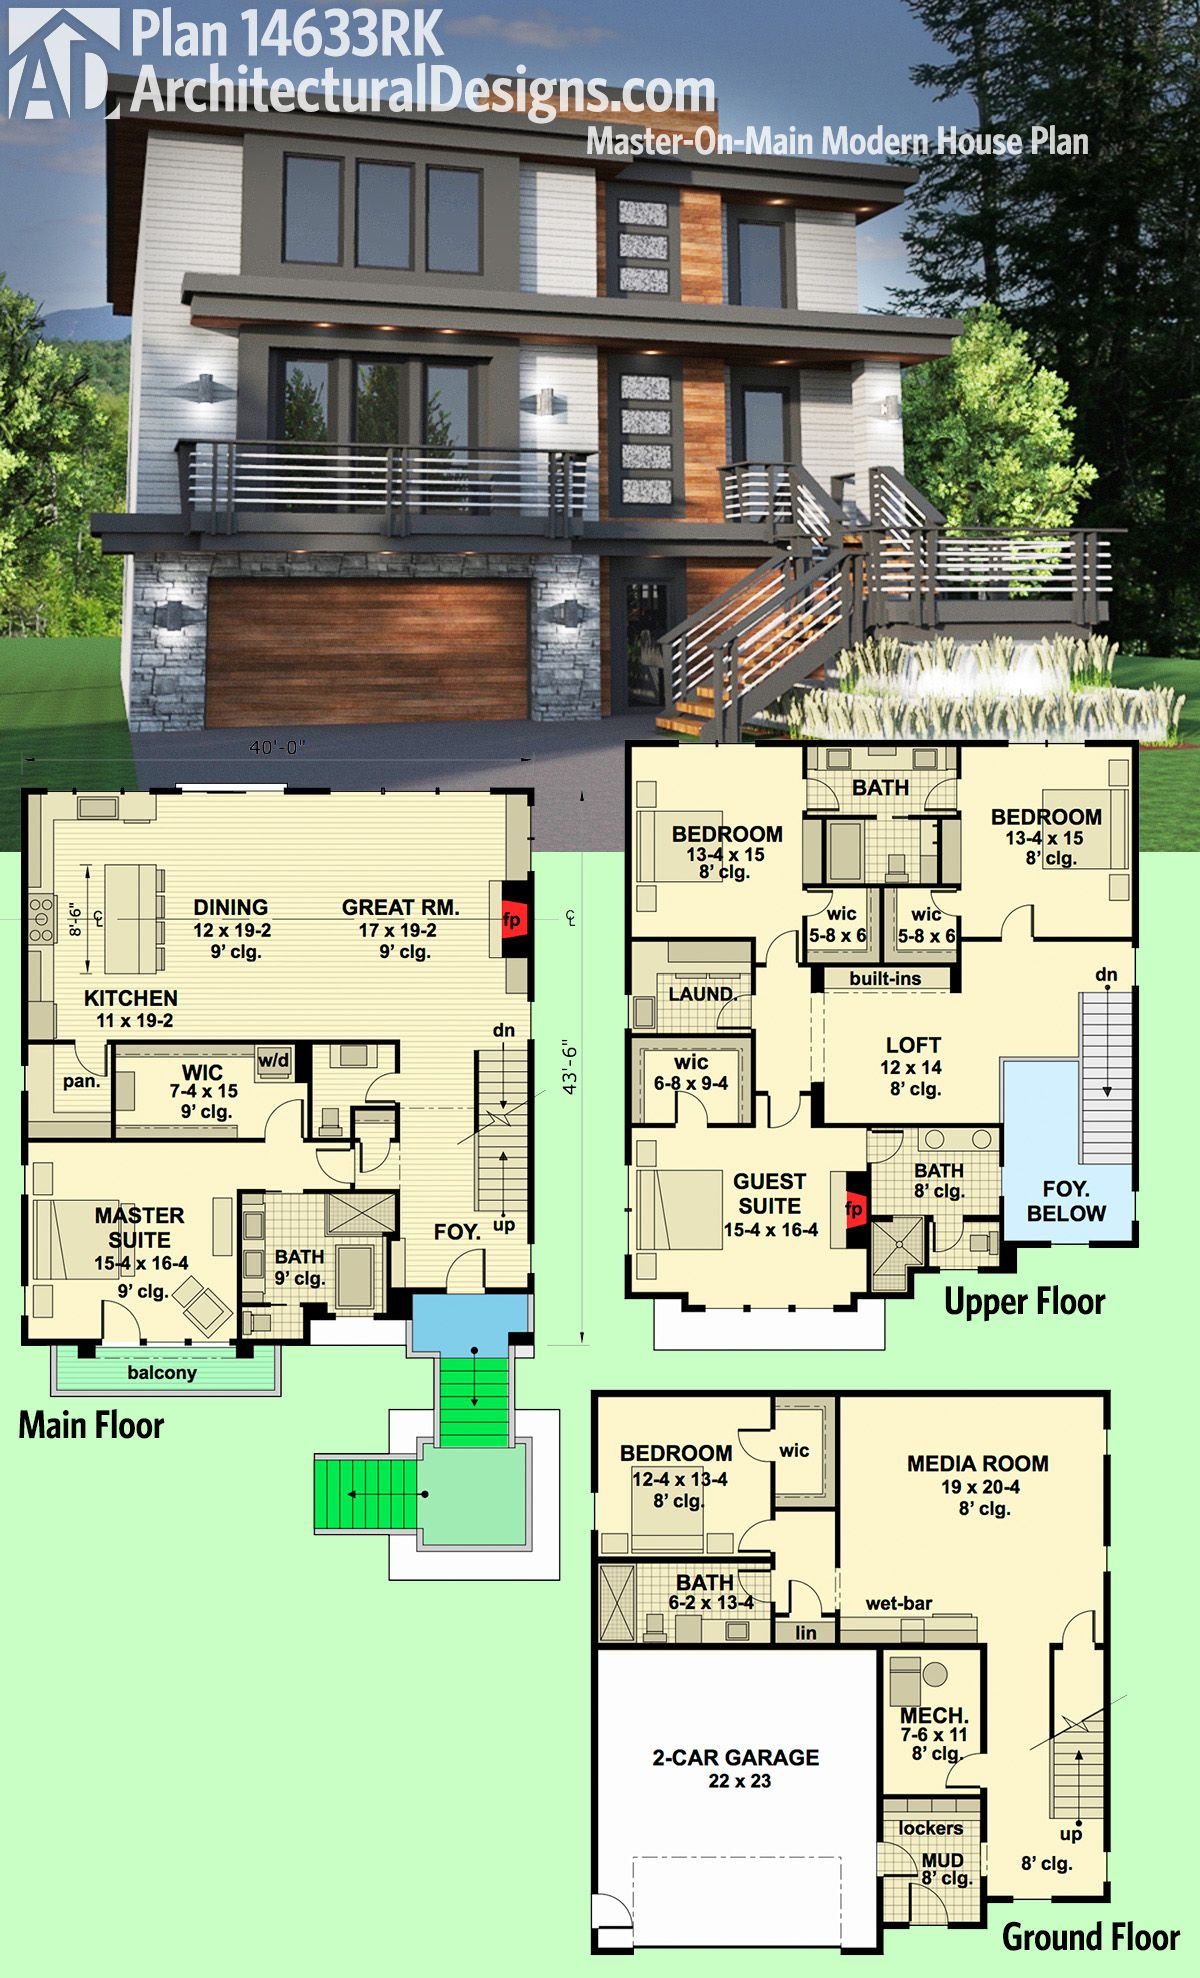 Plan 14633rk master on main modern house plan modern for Modern mansion house plans